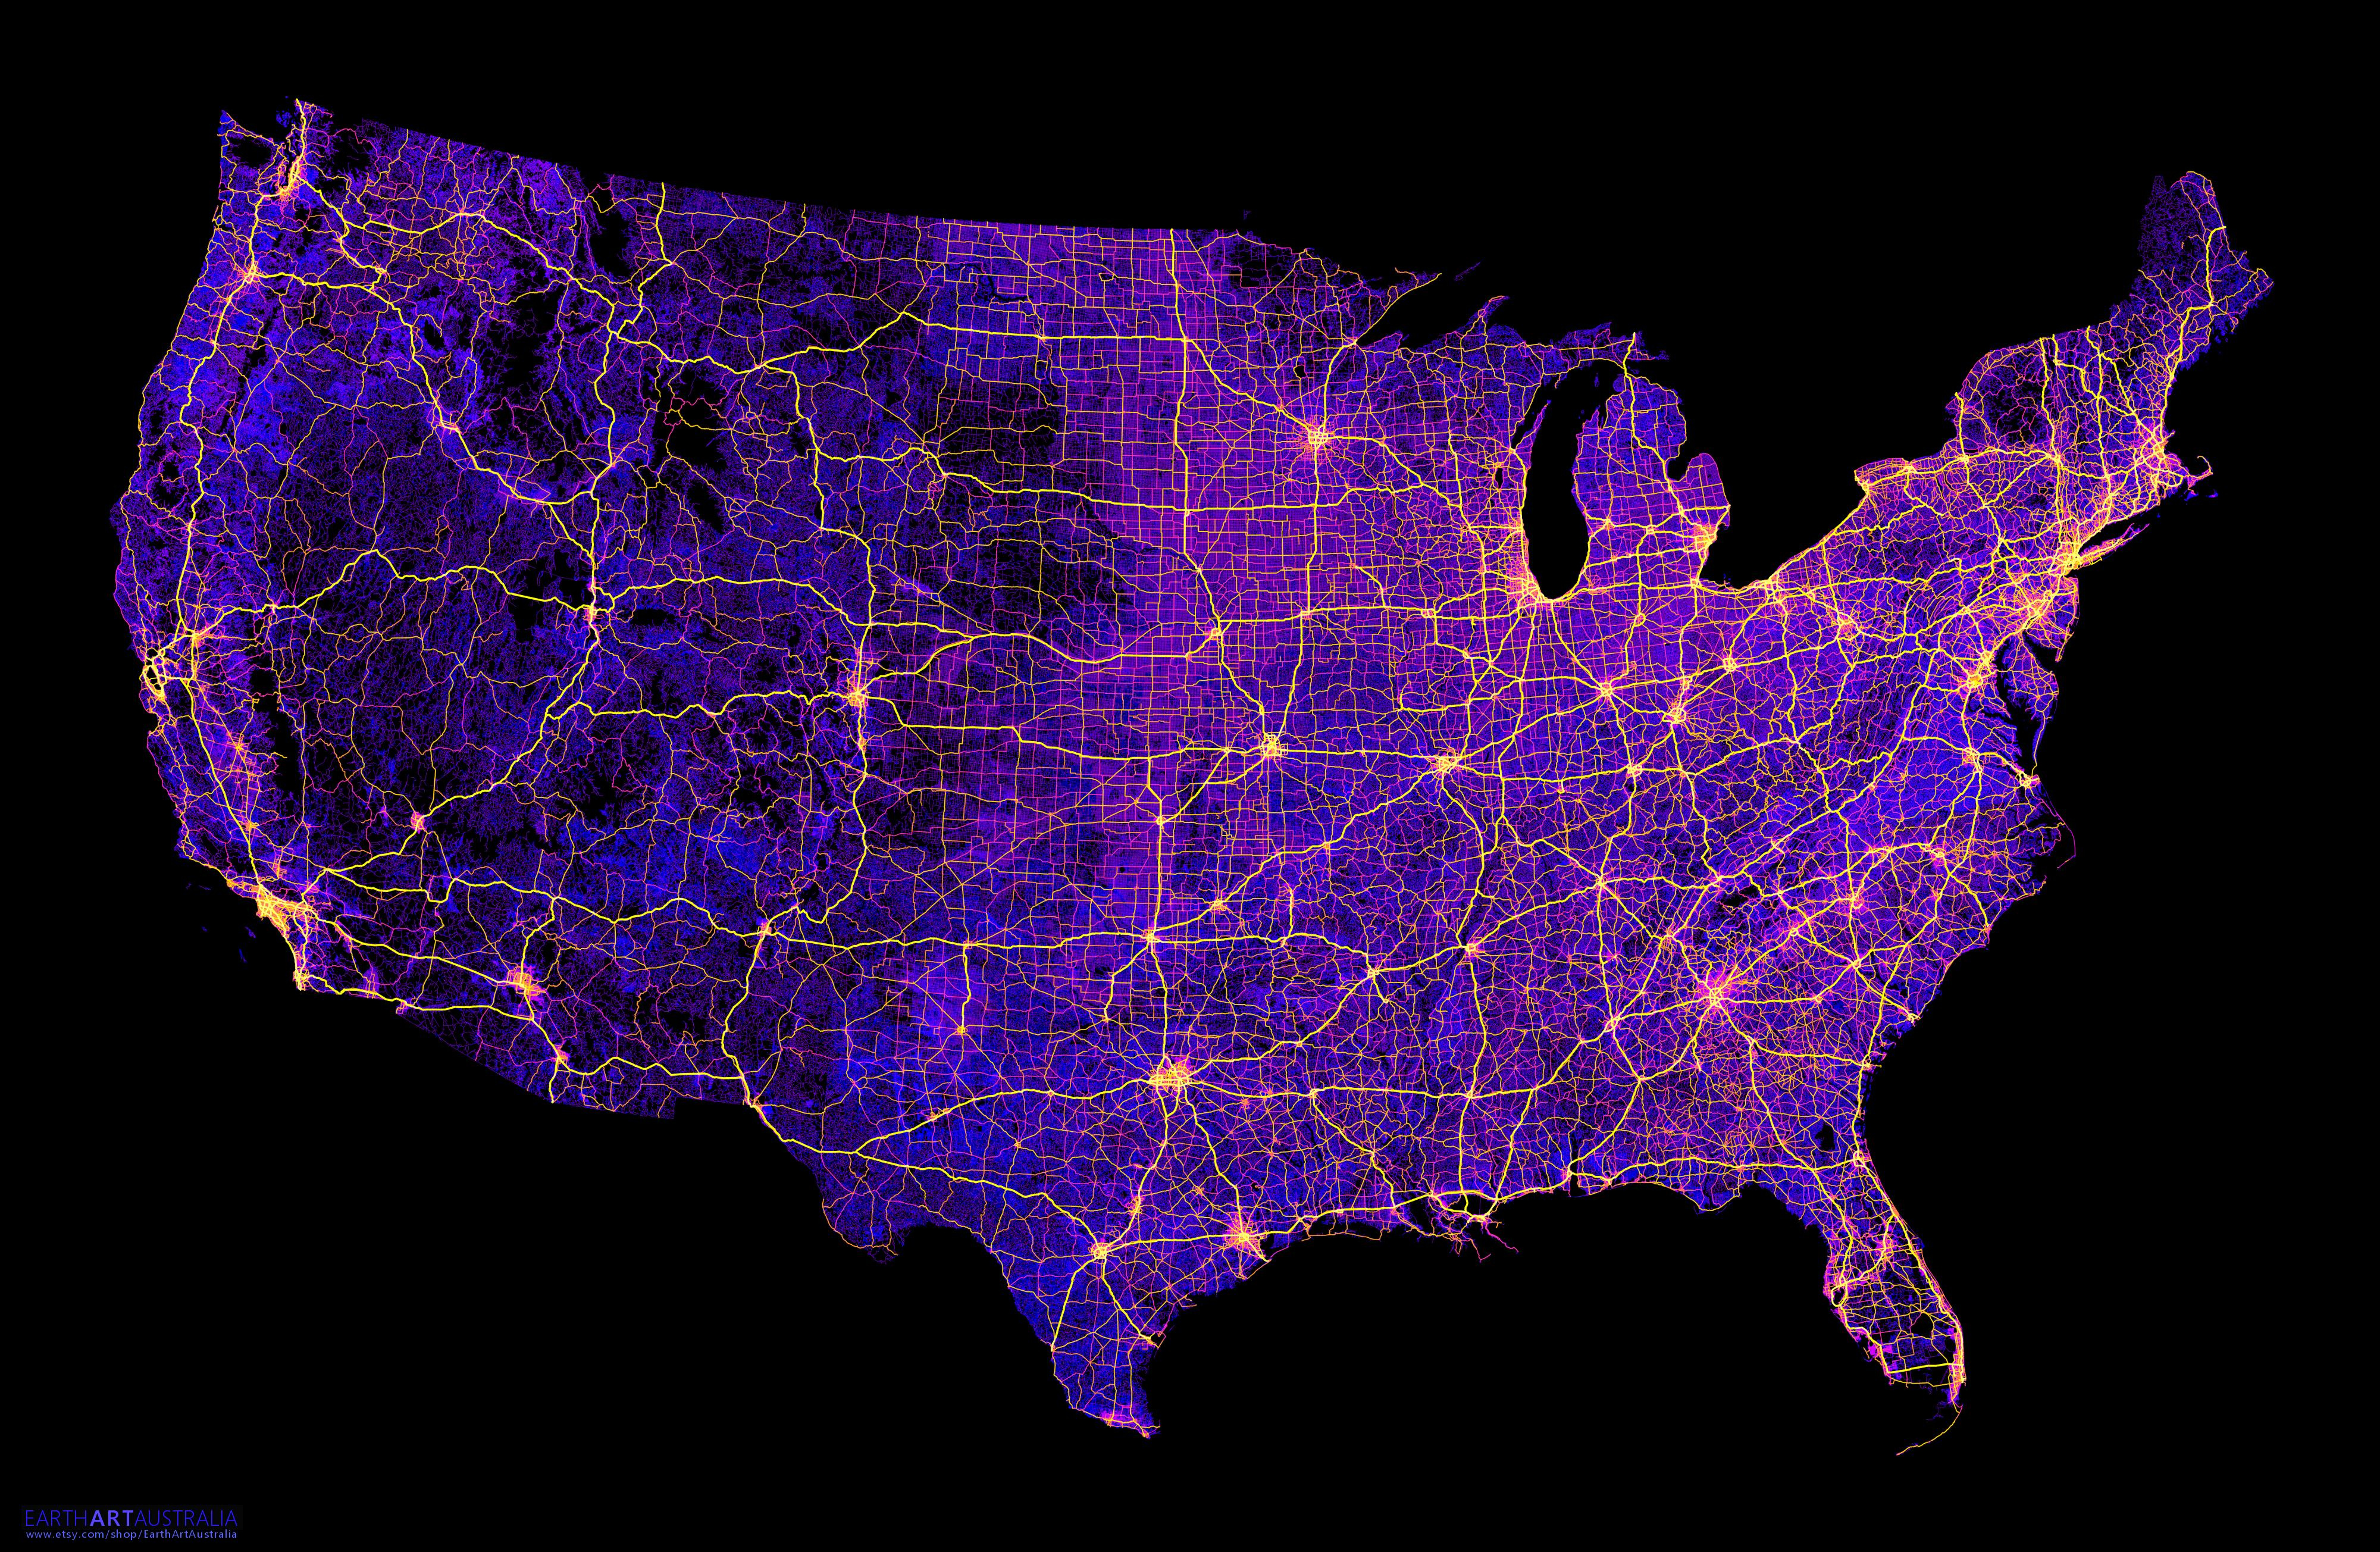 The contiguous United States mapped only by